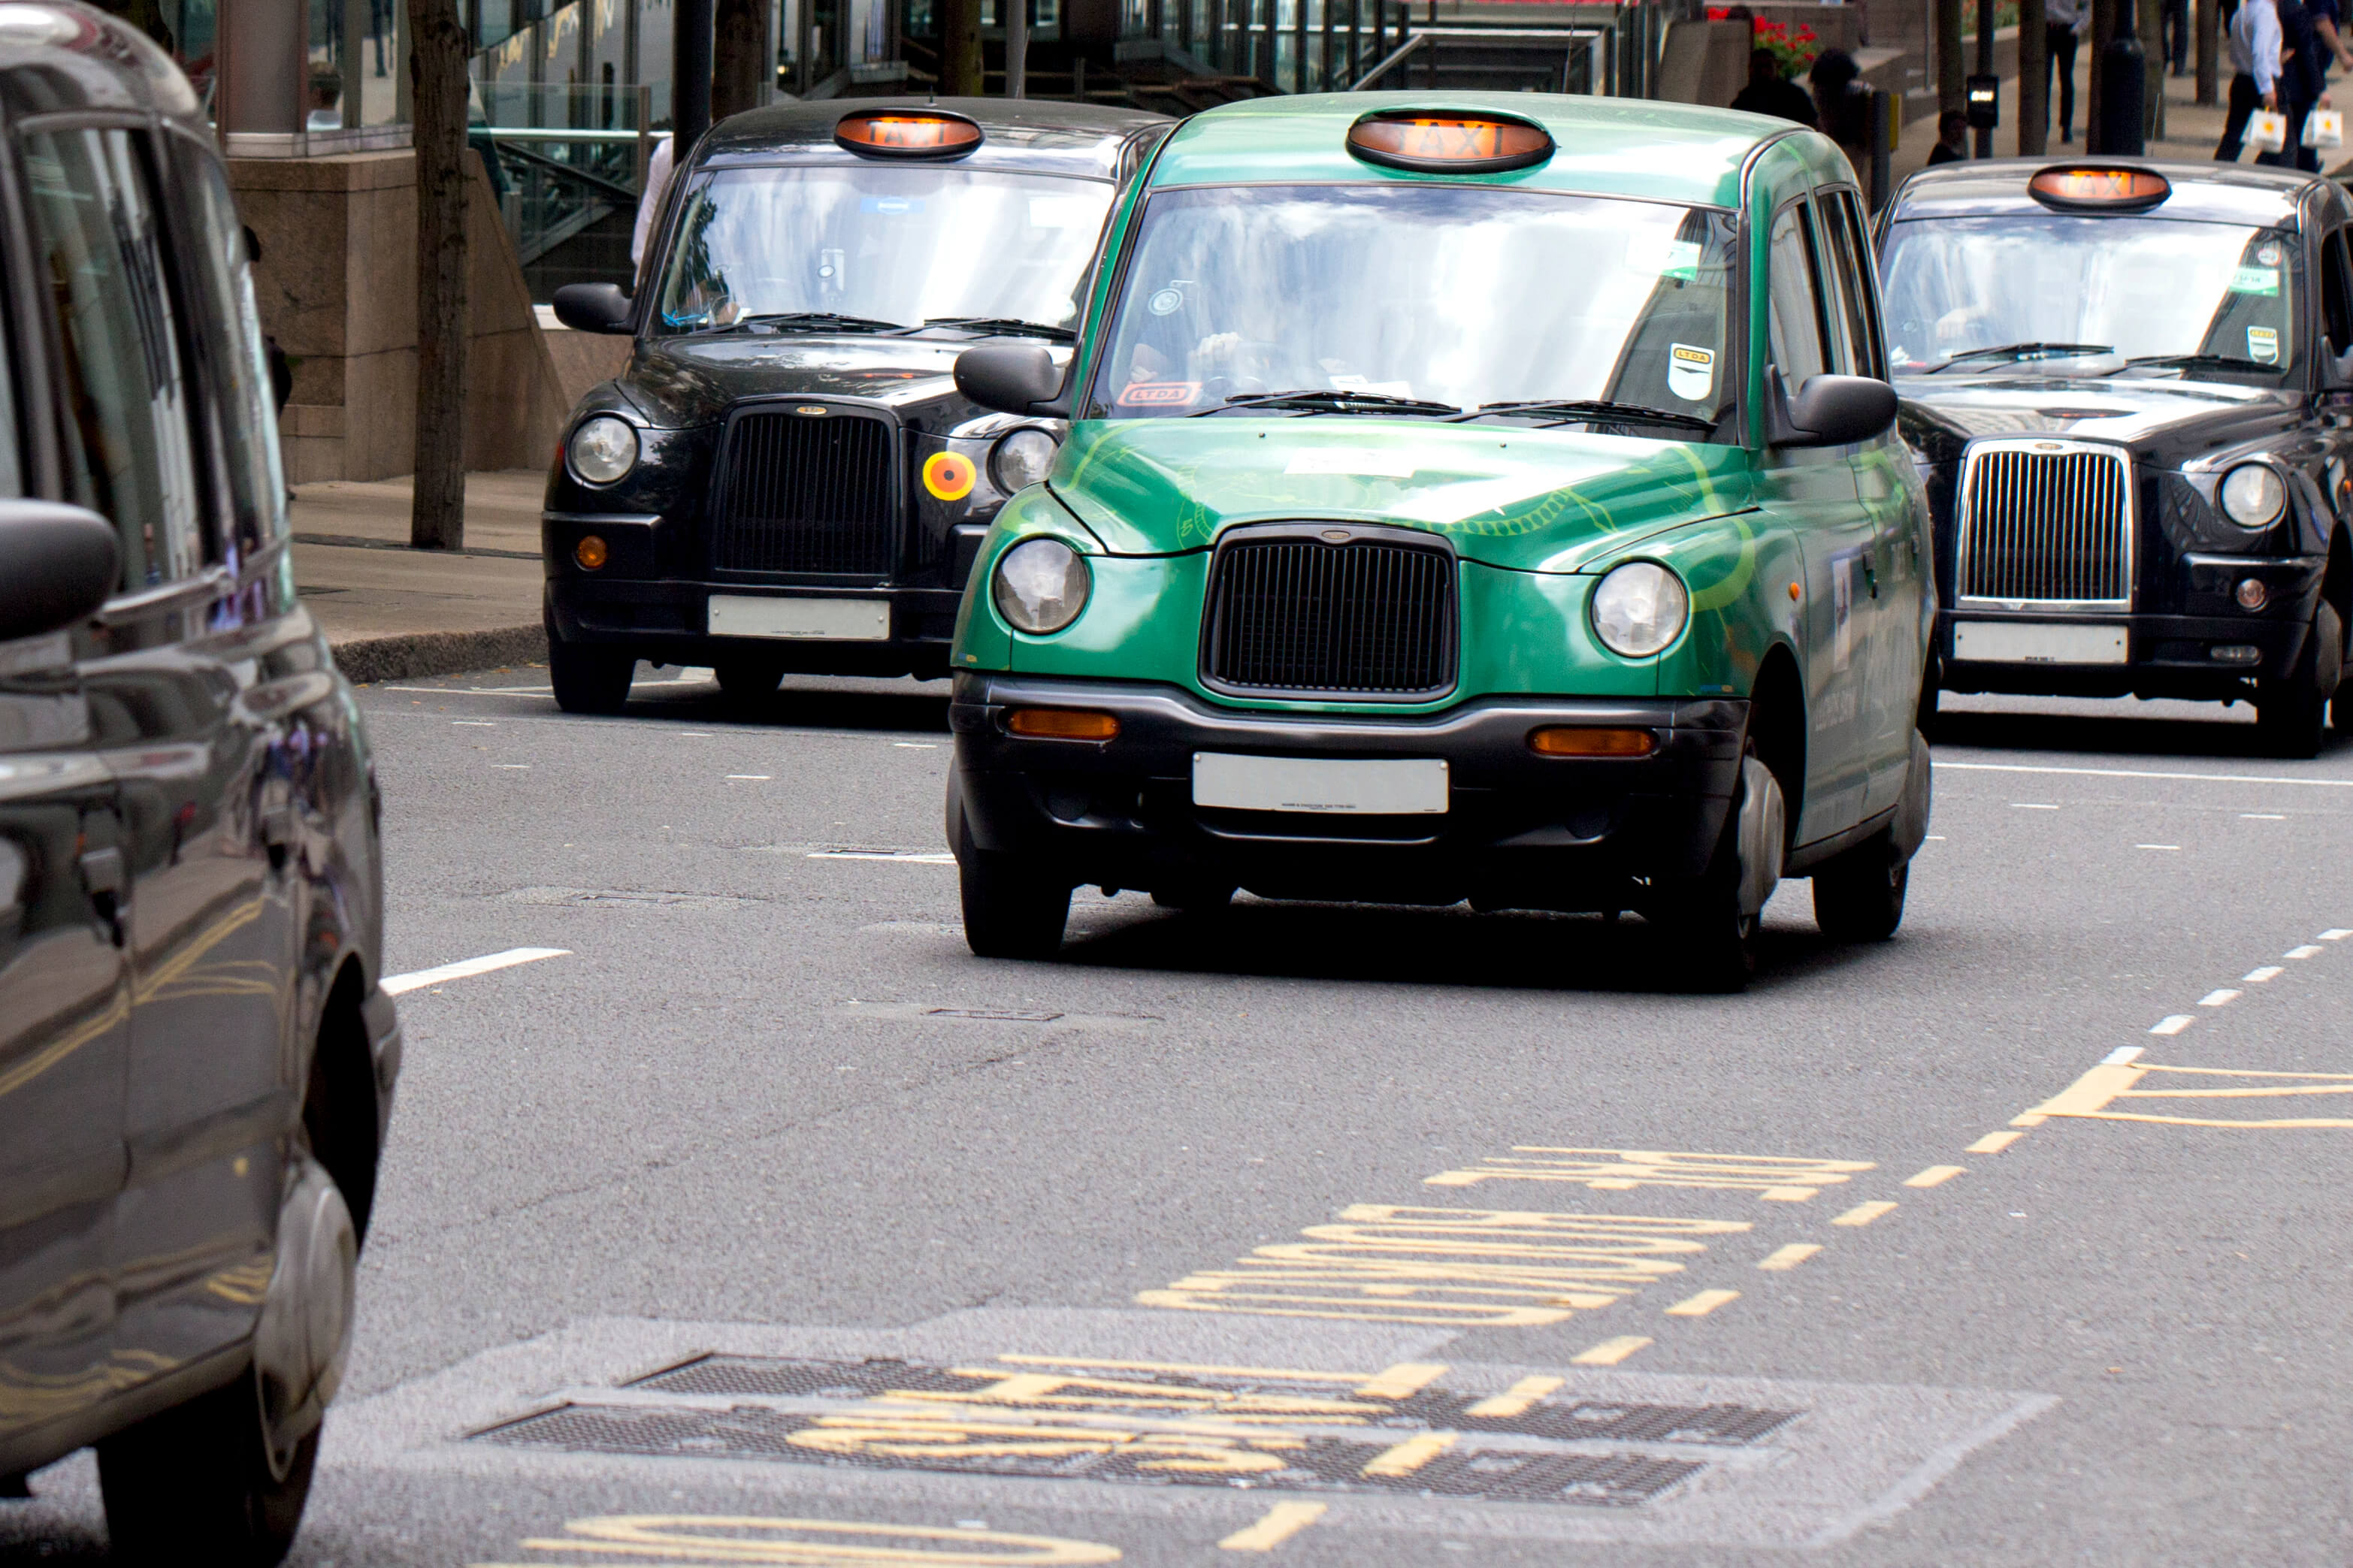 A fleet of black taxis on a London road